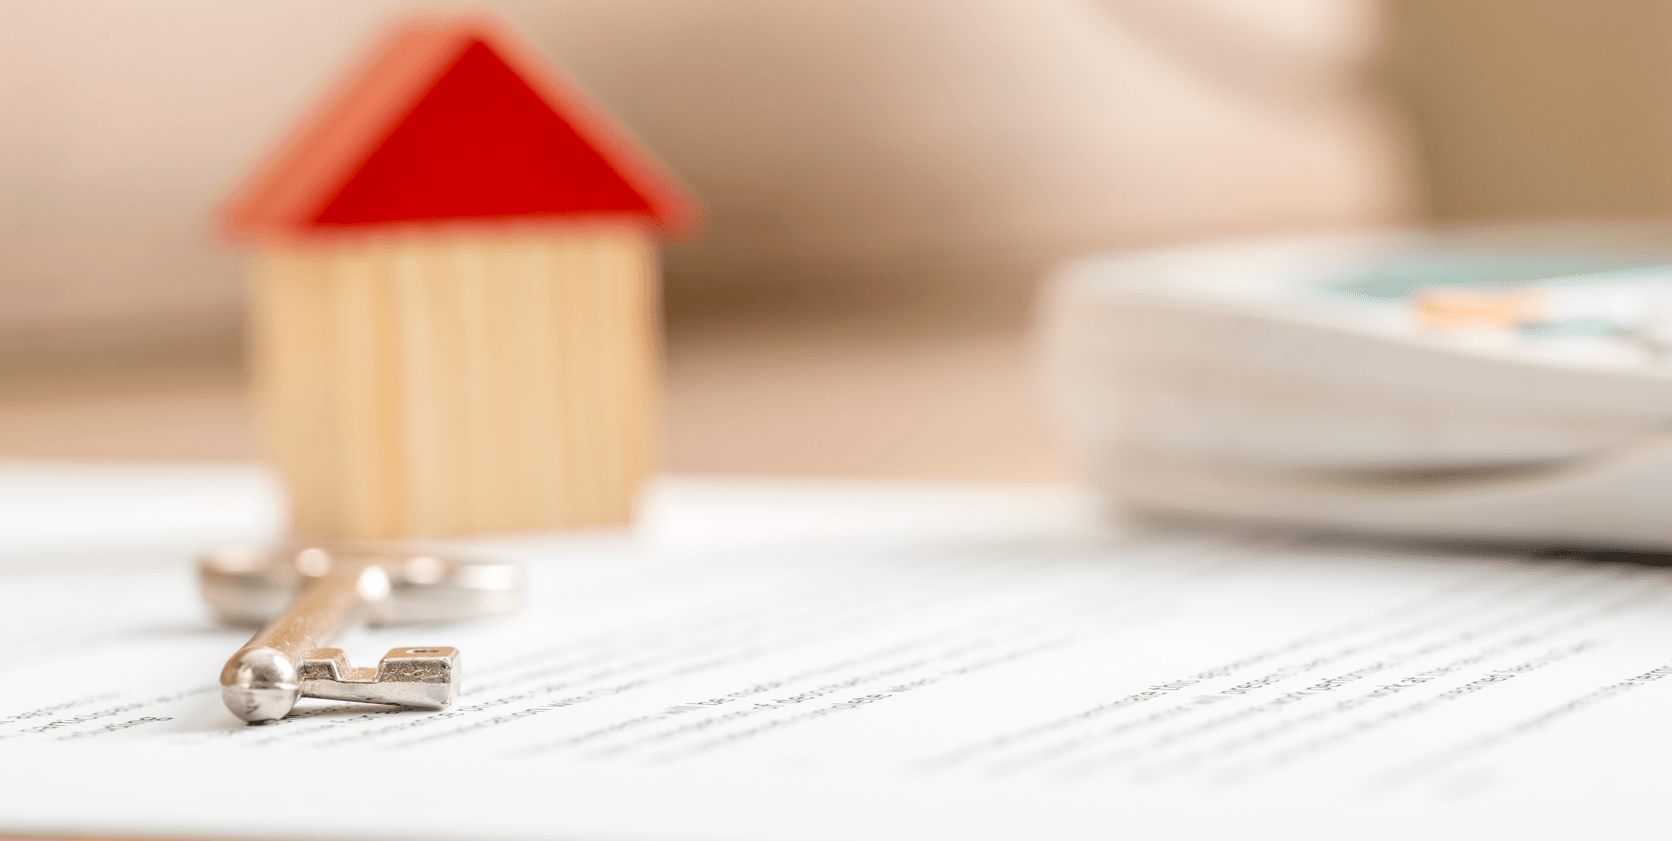 New Mortgage Rules January 1:Why You Should Buy Now House Featured Image